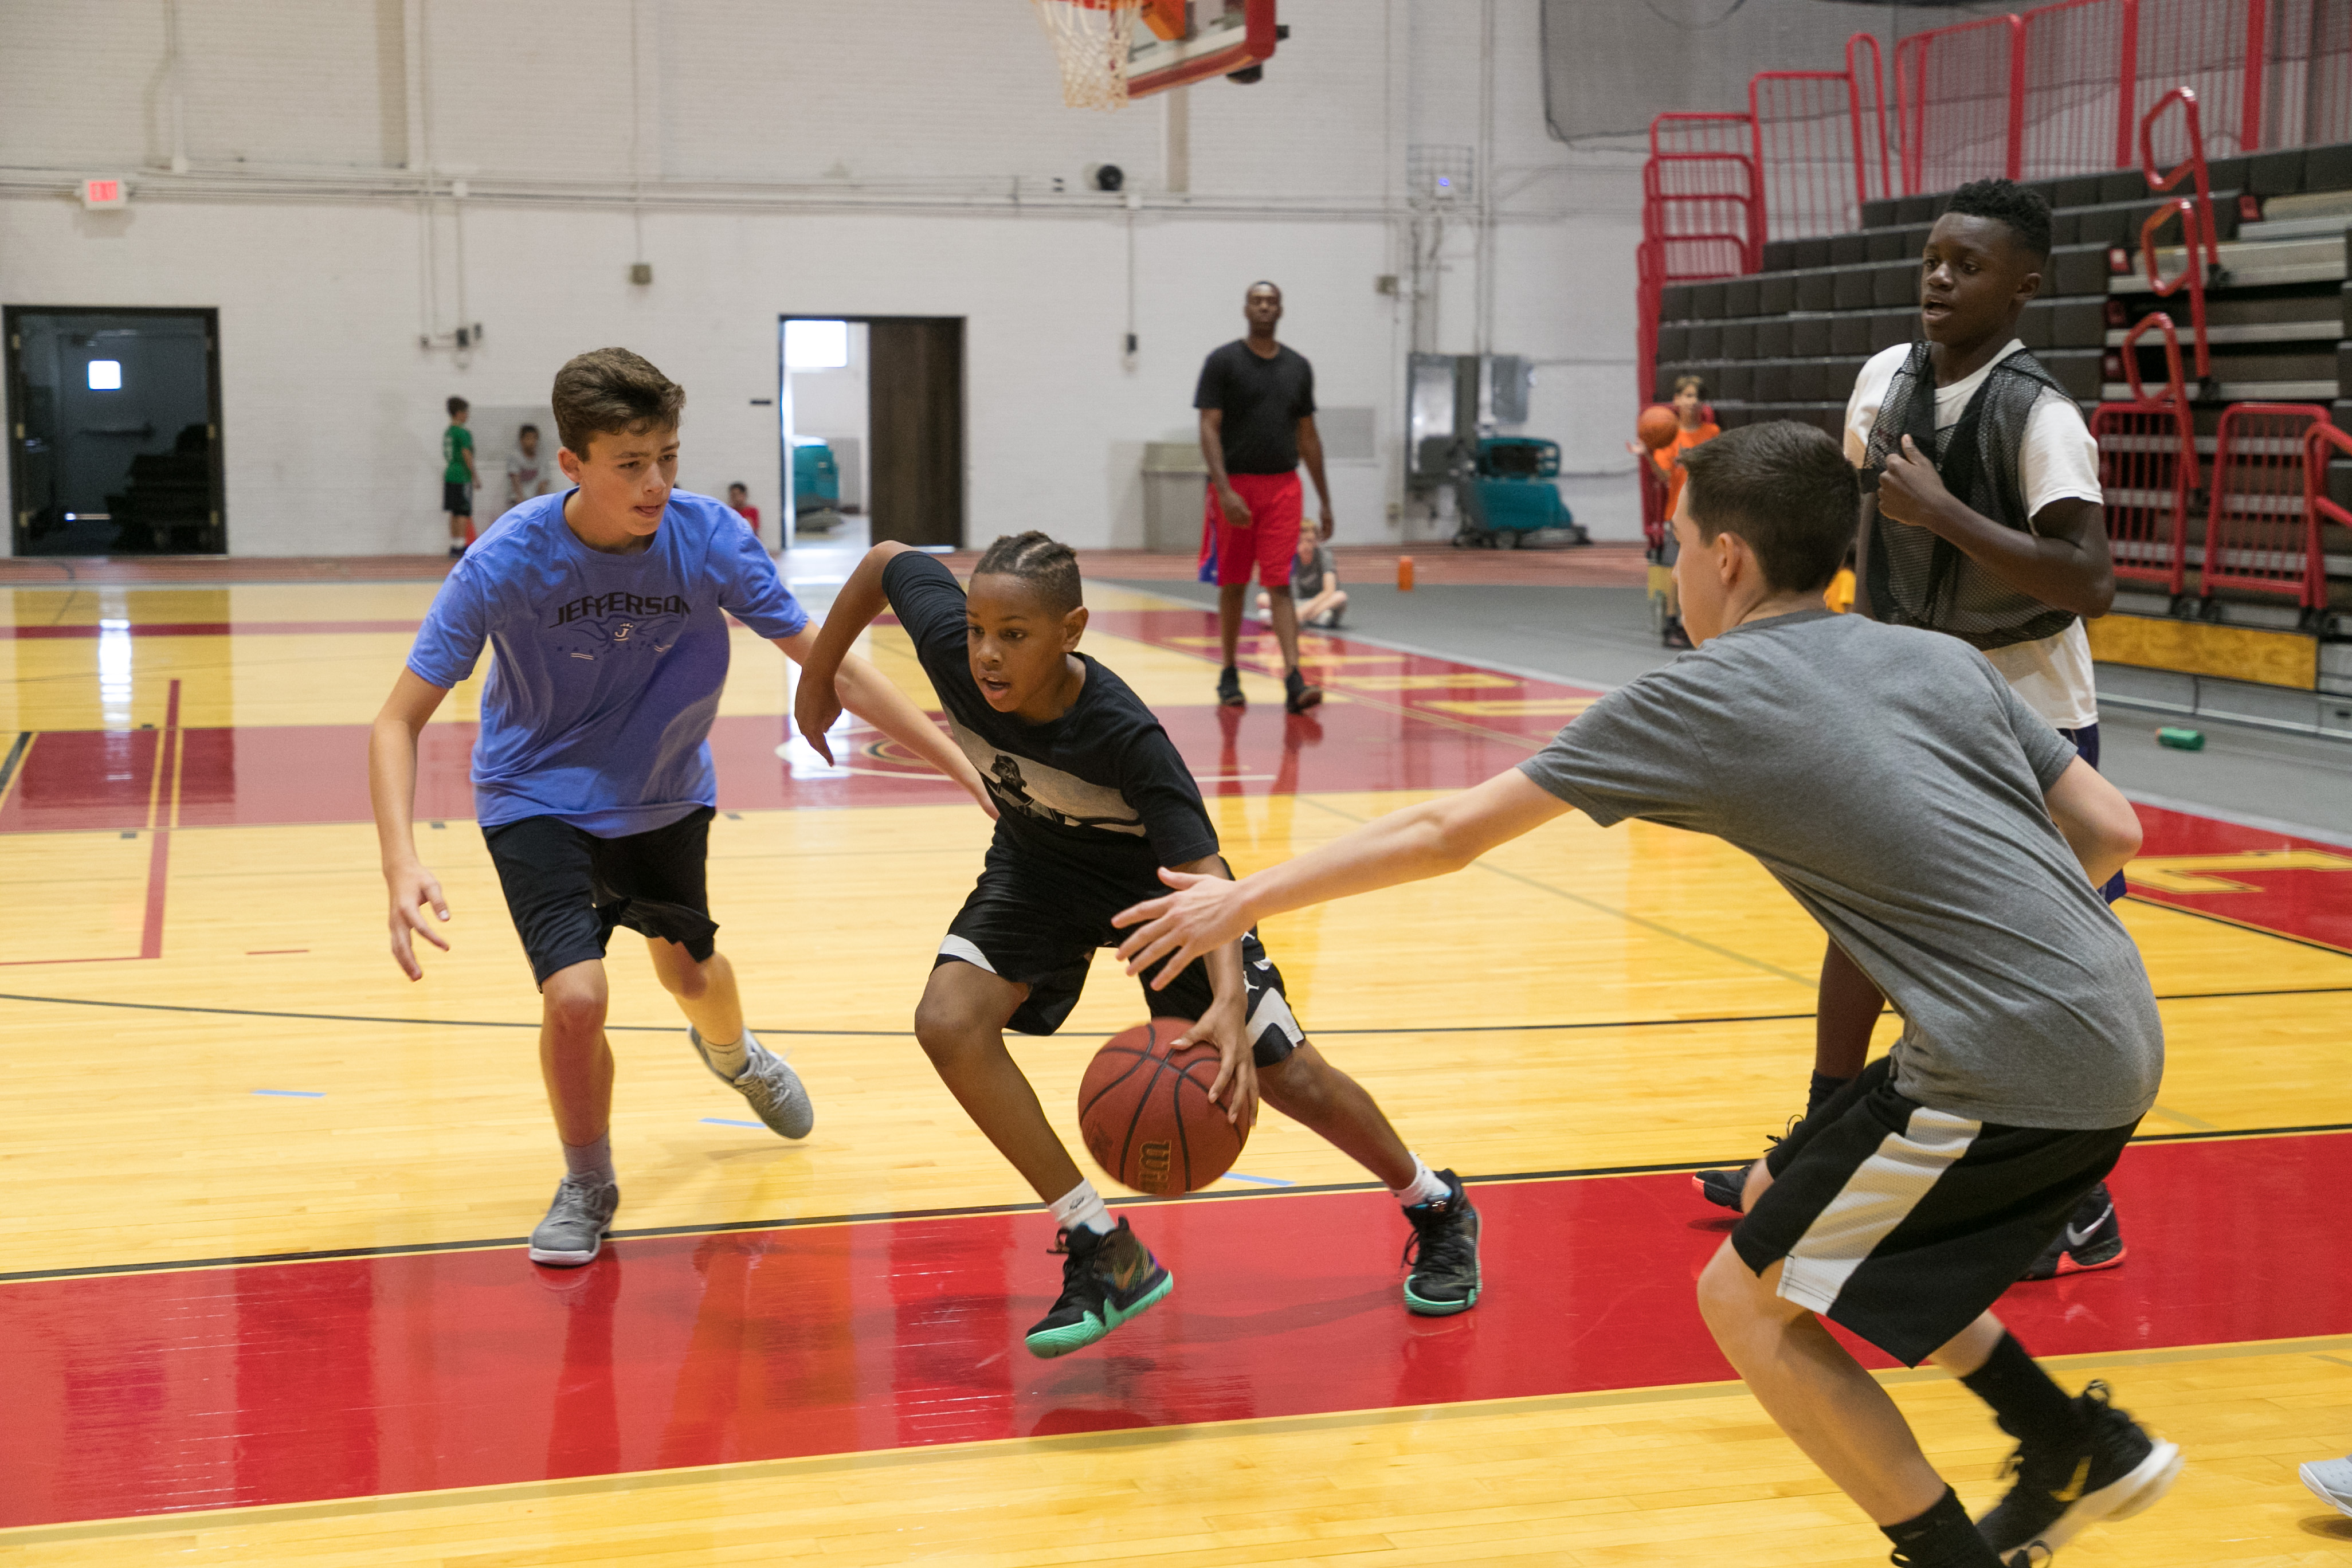 Summer Program - Basketball | North Central College: Summer Athletic Camps